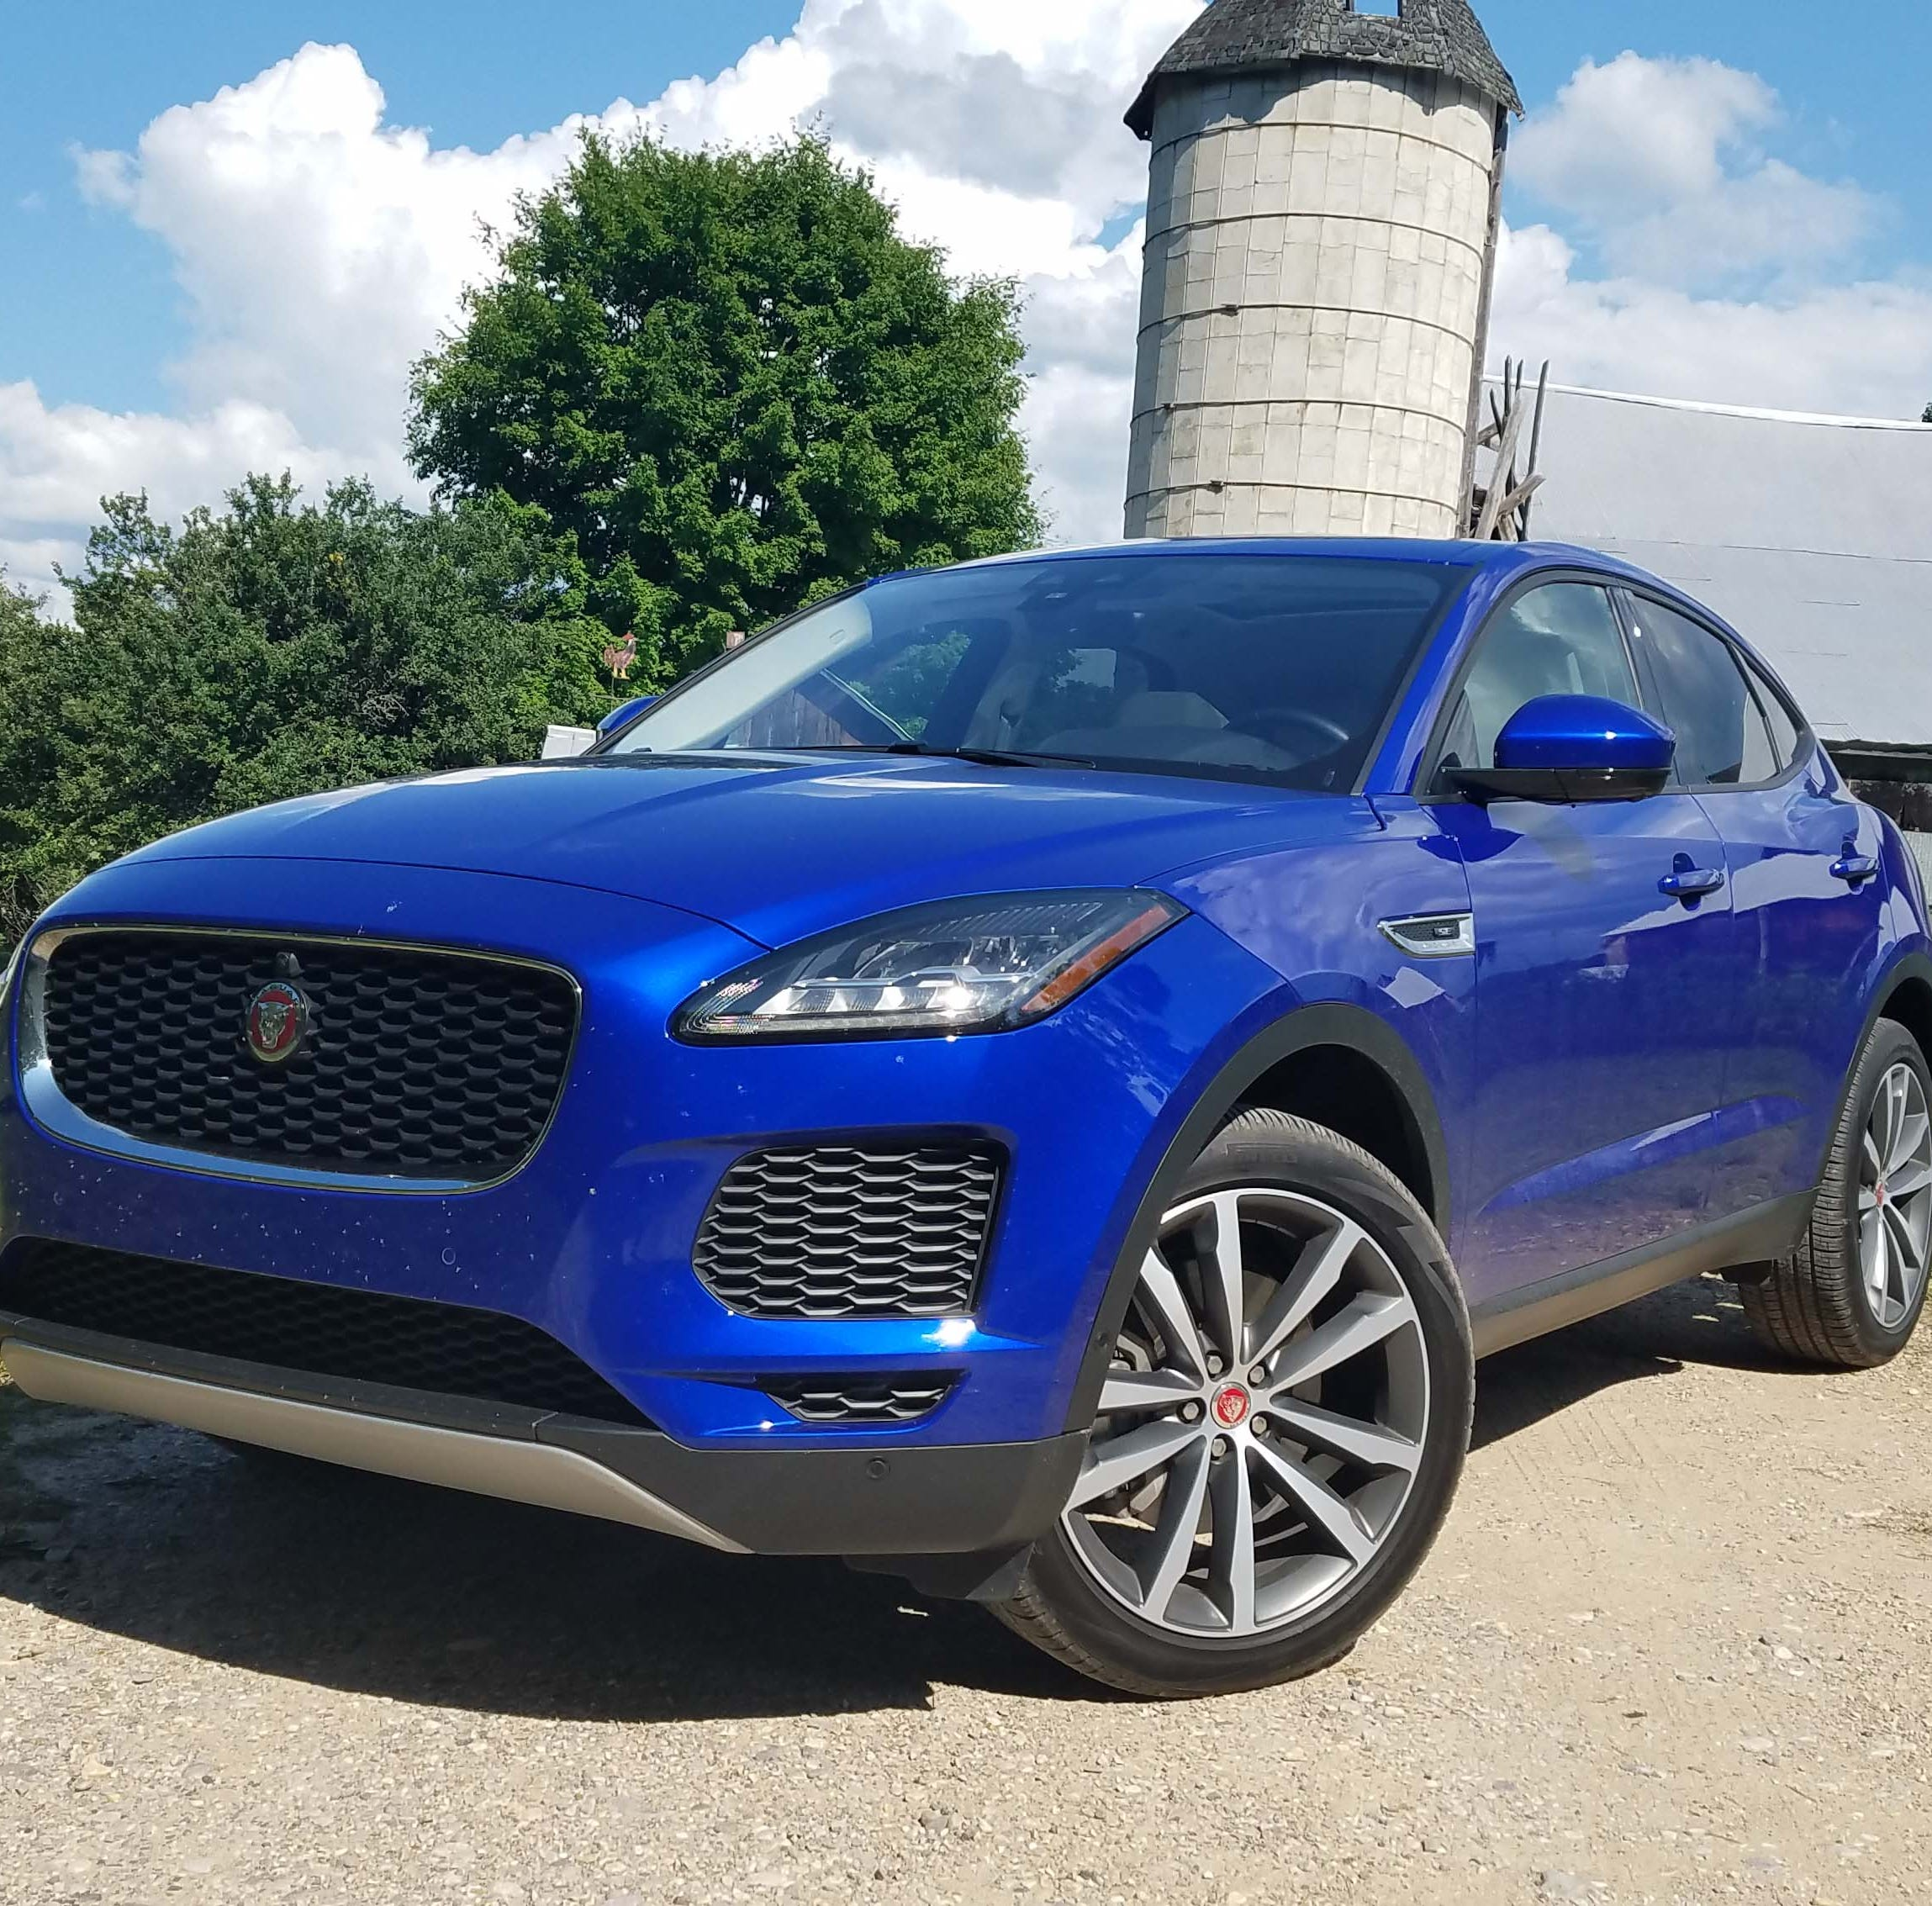 Payne:  Jaguar's E-Pace cub is cute 'n' porky